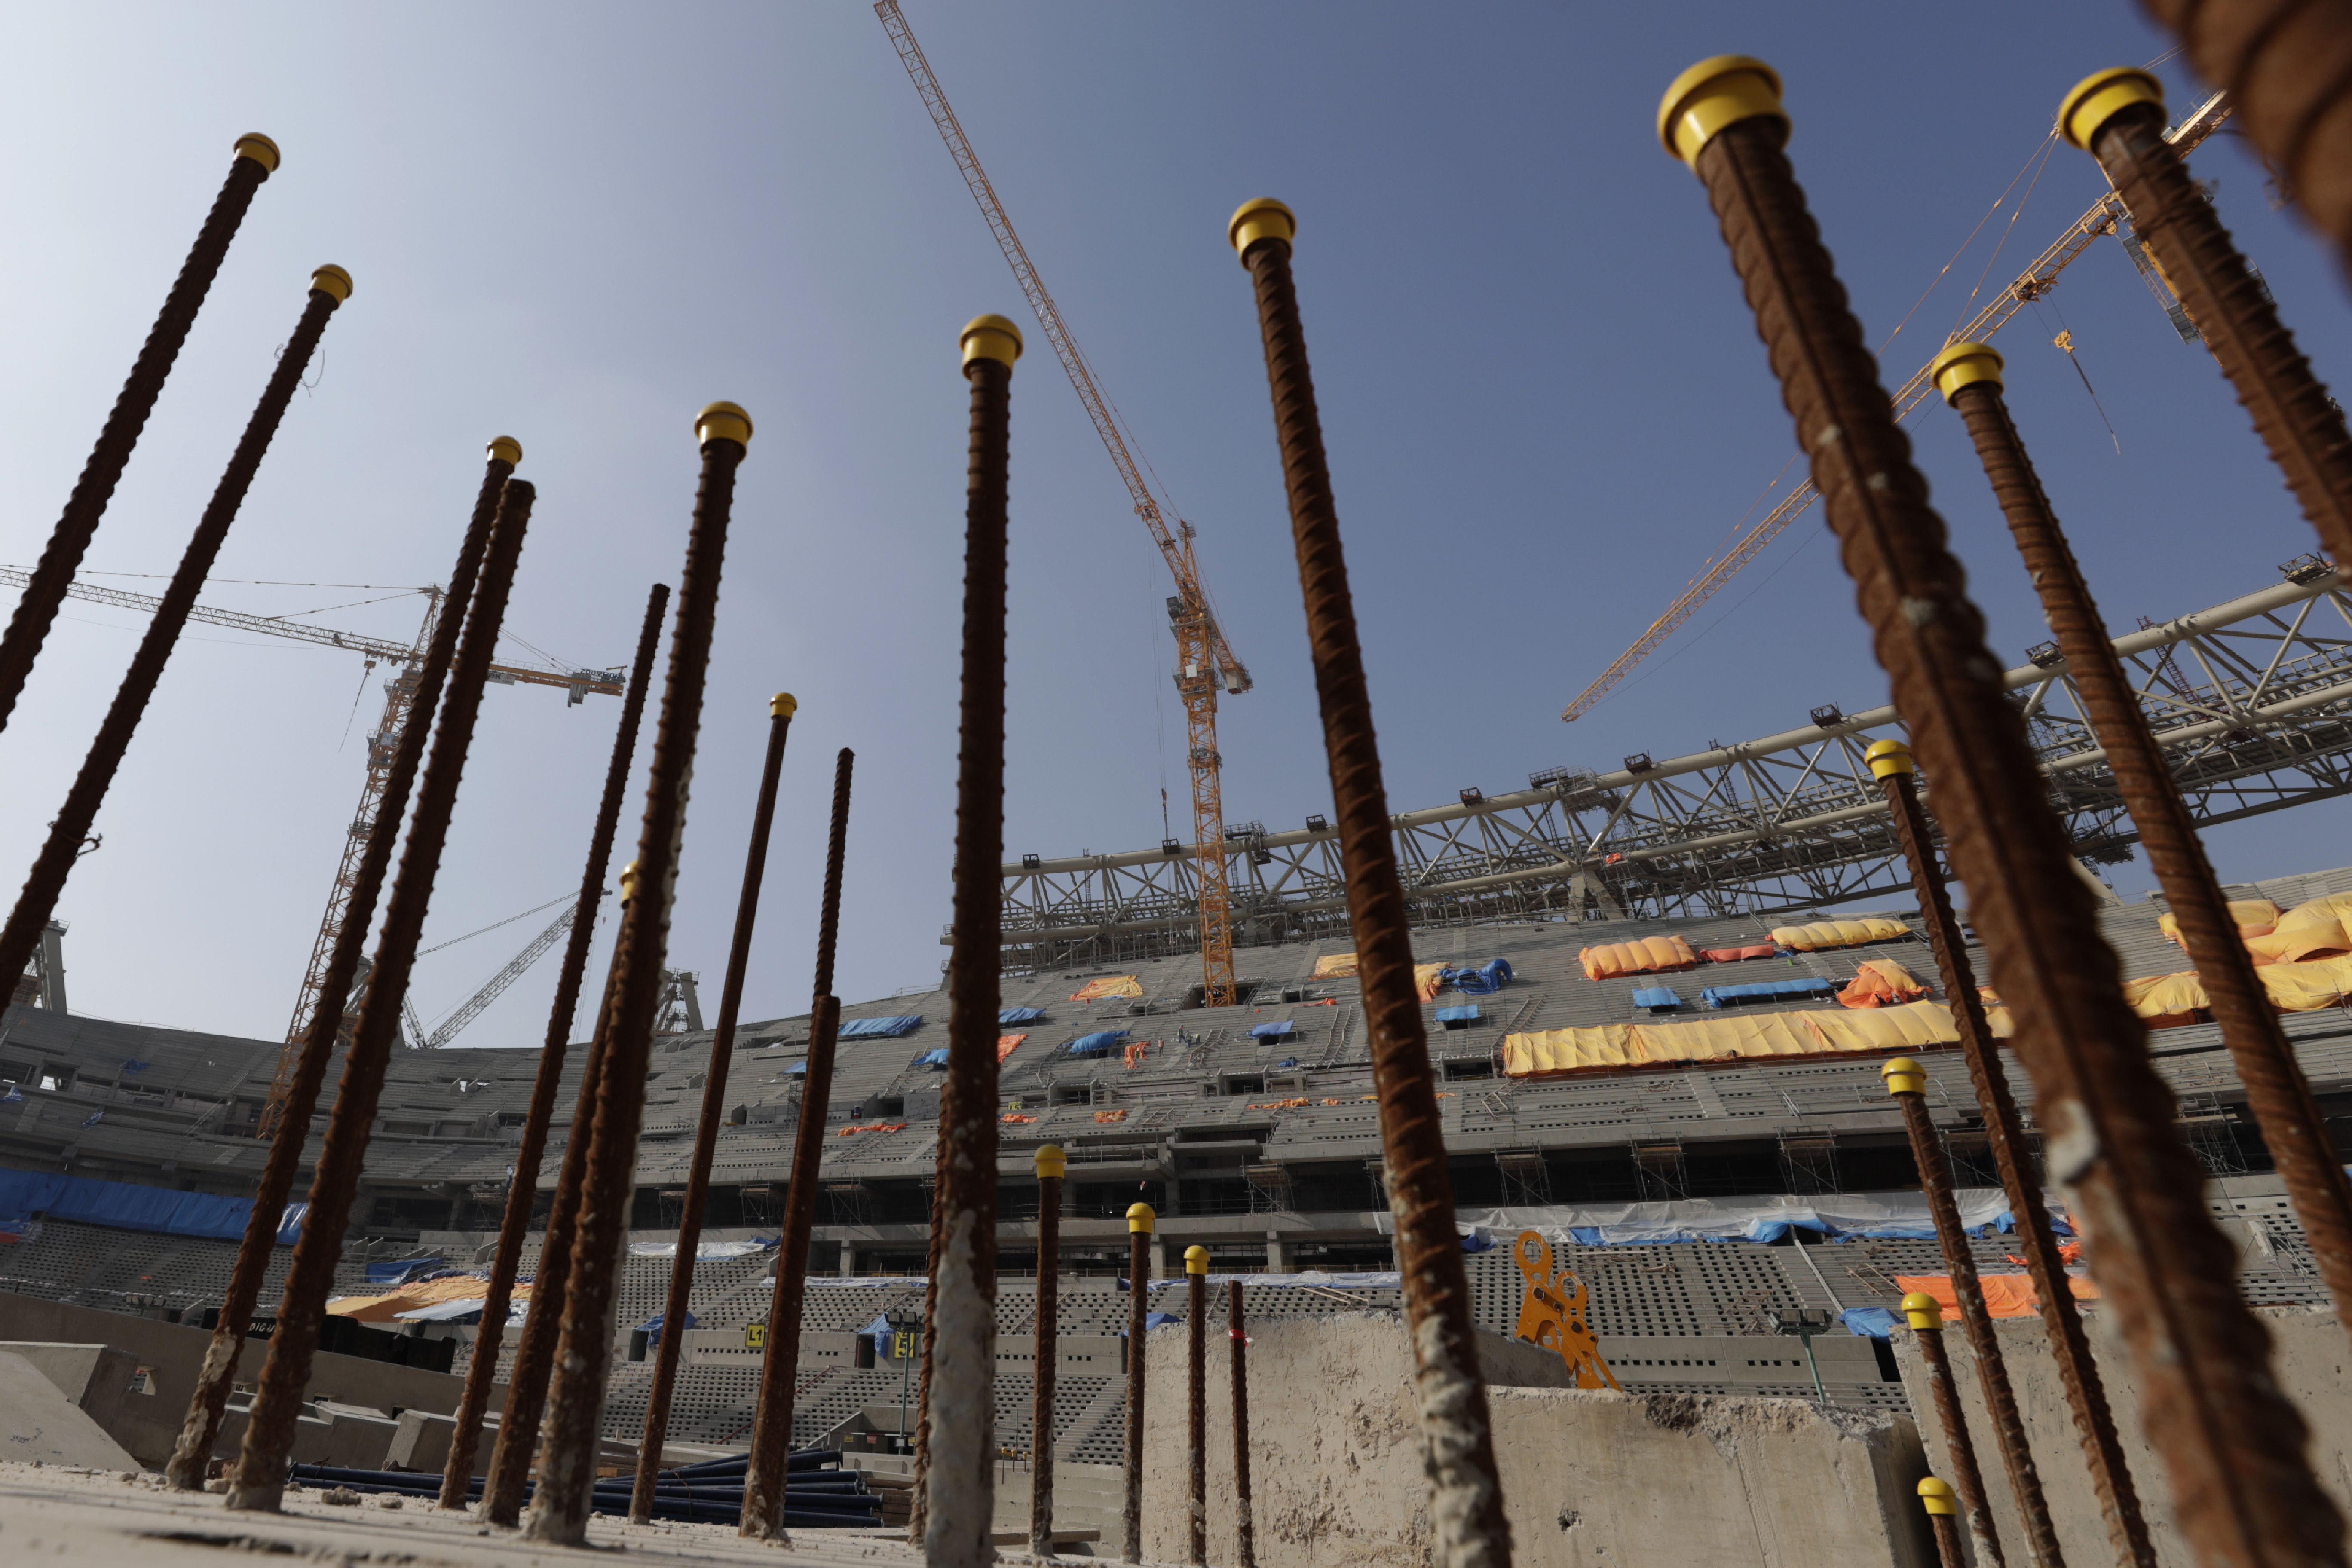 Workers work at Lusail Stadium, one of the 2022 World Cup stadiums, in Lusail, Qatar, Friday, Dec. 20, 2019. Construction is underway to complete Lusail's 80,000-seat venue for the opening game and final in a city that didn't exist when Qatar won the FIFA vote in 2010. (AP Photo/Hassan Ammar)